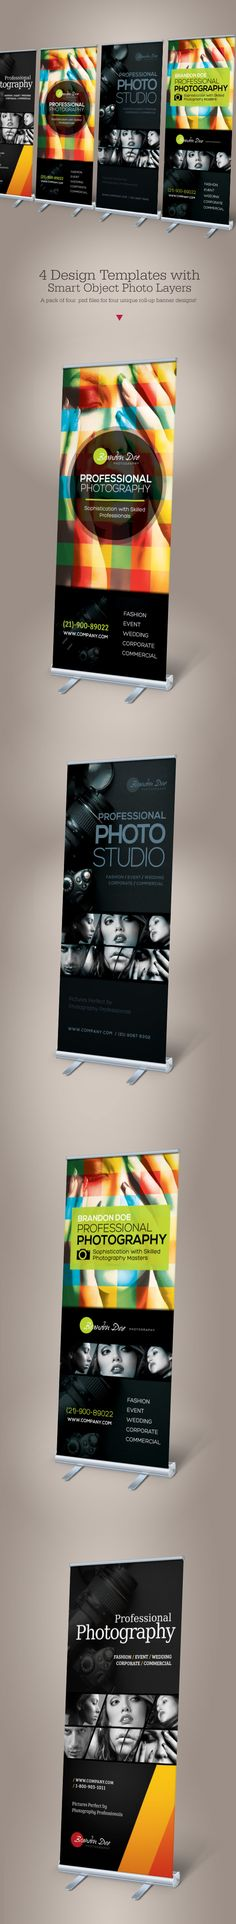 Buy Photography Roll-up Banners by on GraphicRiver. Professional Photography Roll-up Banners These templates are perfect for photography service or for professional phot. Pop Up Banner, Best Banner, Web Design, Graphic Design Layouts, Layout Design, Branding, Rollup Design, Standing Banner Design, Standee Design